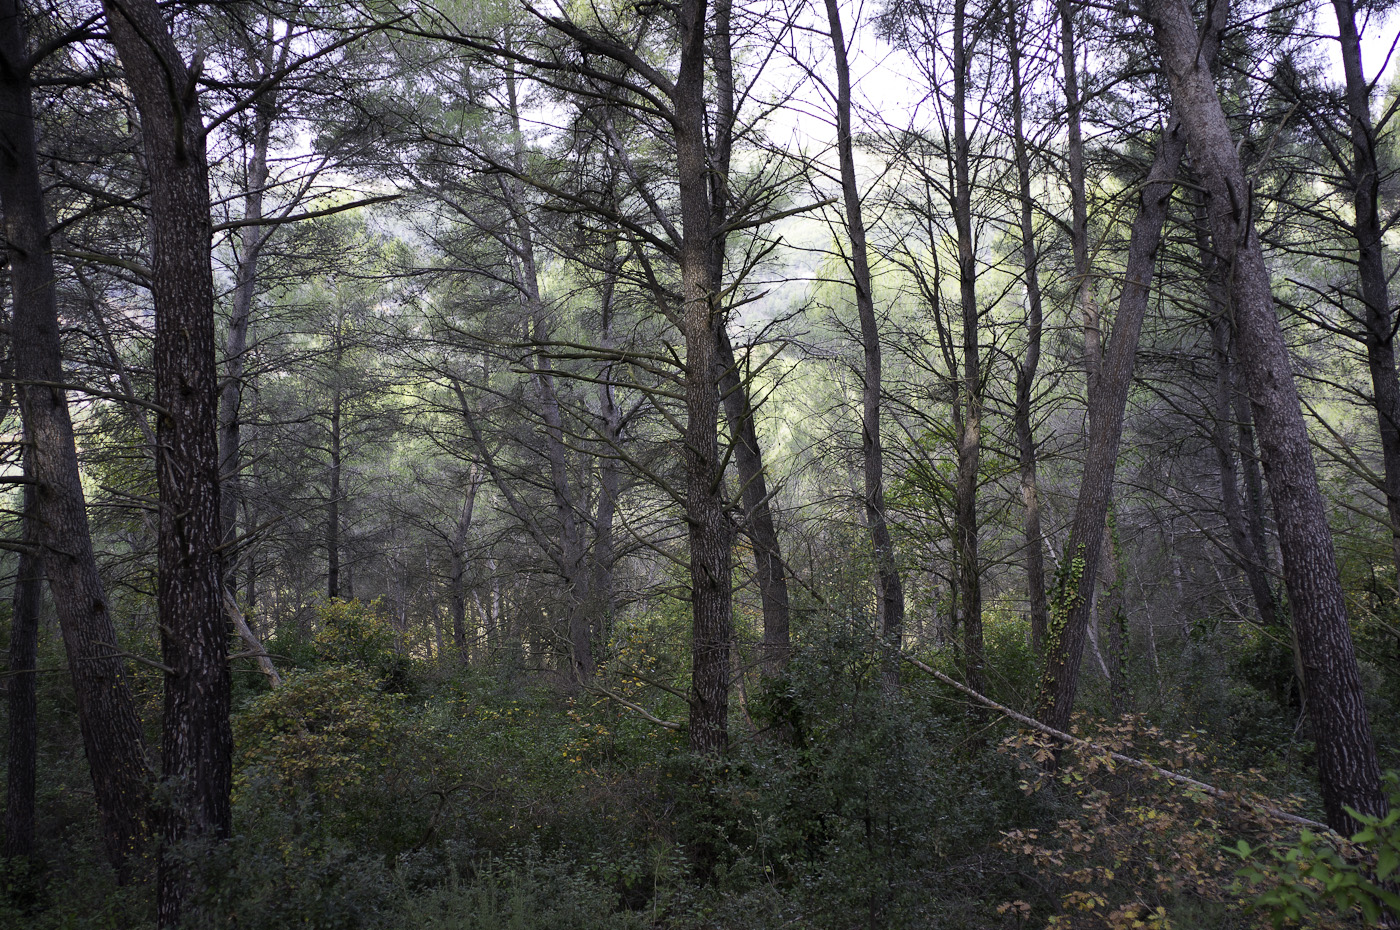 A forest in slight mist, Sony NEX-5N & Zeiss ZM Biogon 25mm/2.8